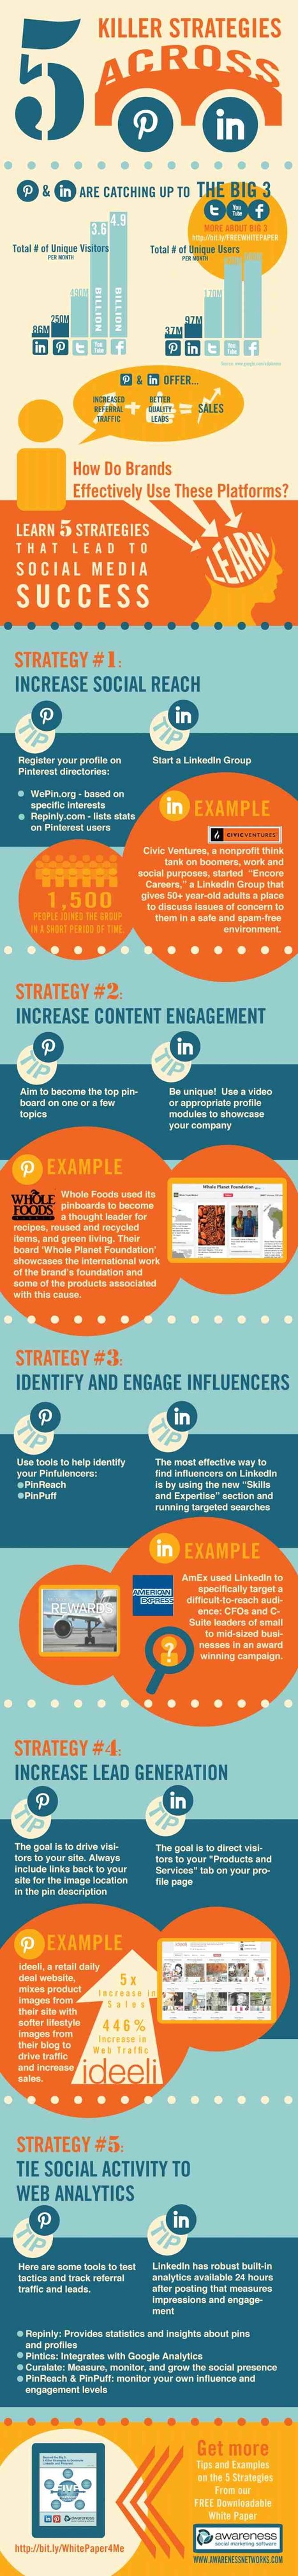 Beyond the Big 3: Strategies for Brands to Dominate Pinterest and LinkedIn [Infographic] | The Social Media Marketing | Scoop.it